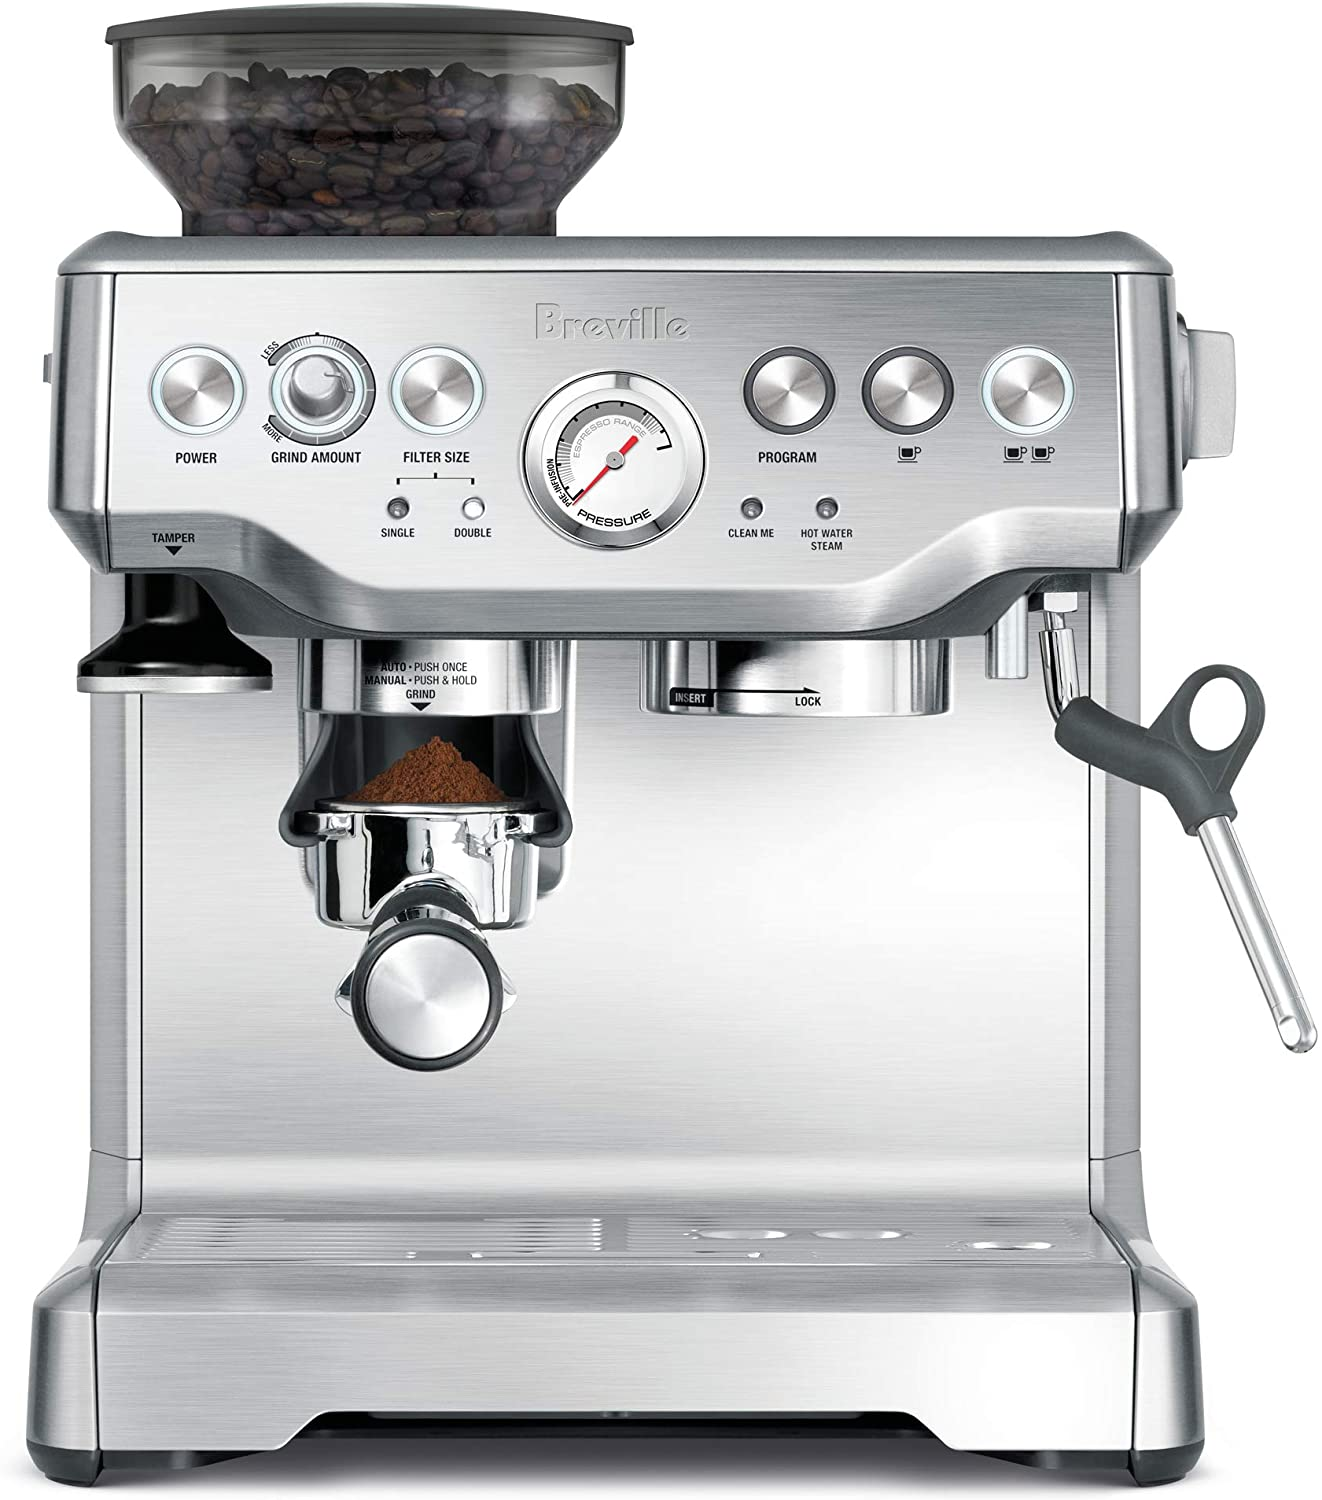 2. Breville the Barista Express Espresso Machine